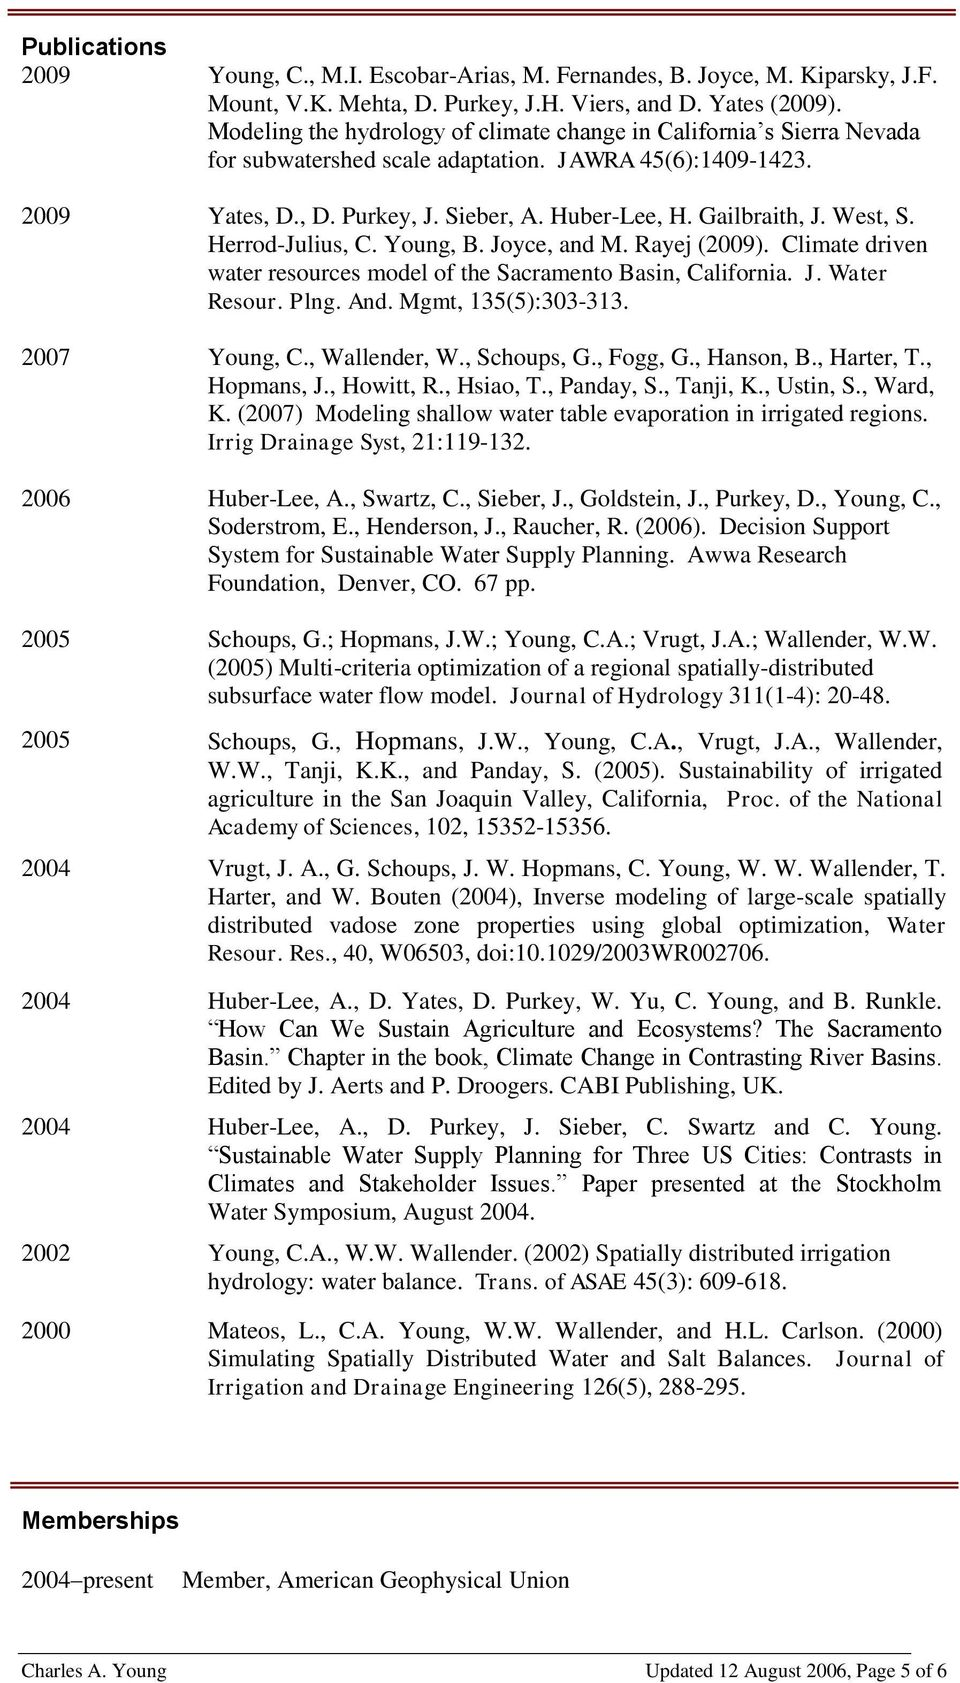 West, S. Herrod-Julius, C. Young, B. Joyce, and M. Rayej (2009). Climate driven water resources model of the Sacramento Basin, California. J. Water Resour. Plng. And. Mgmt, 135(5):303-313.